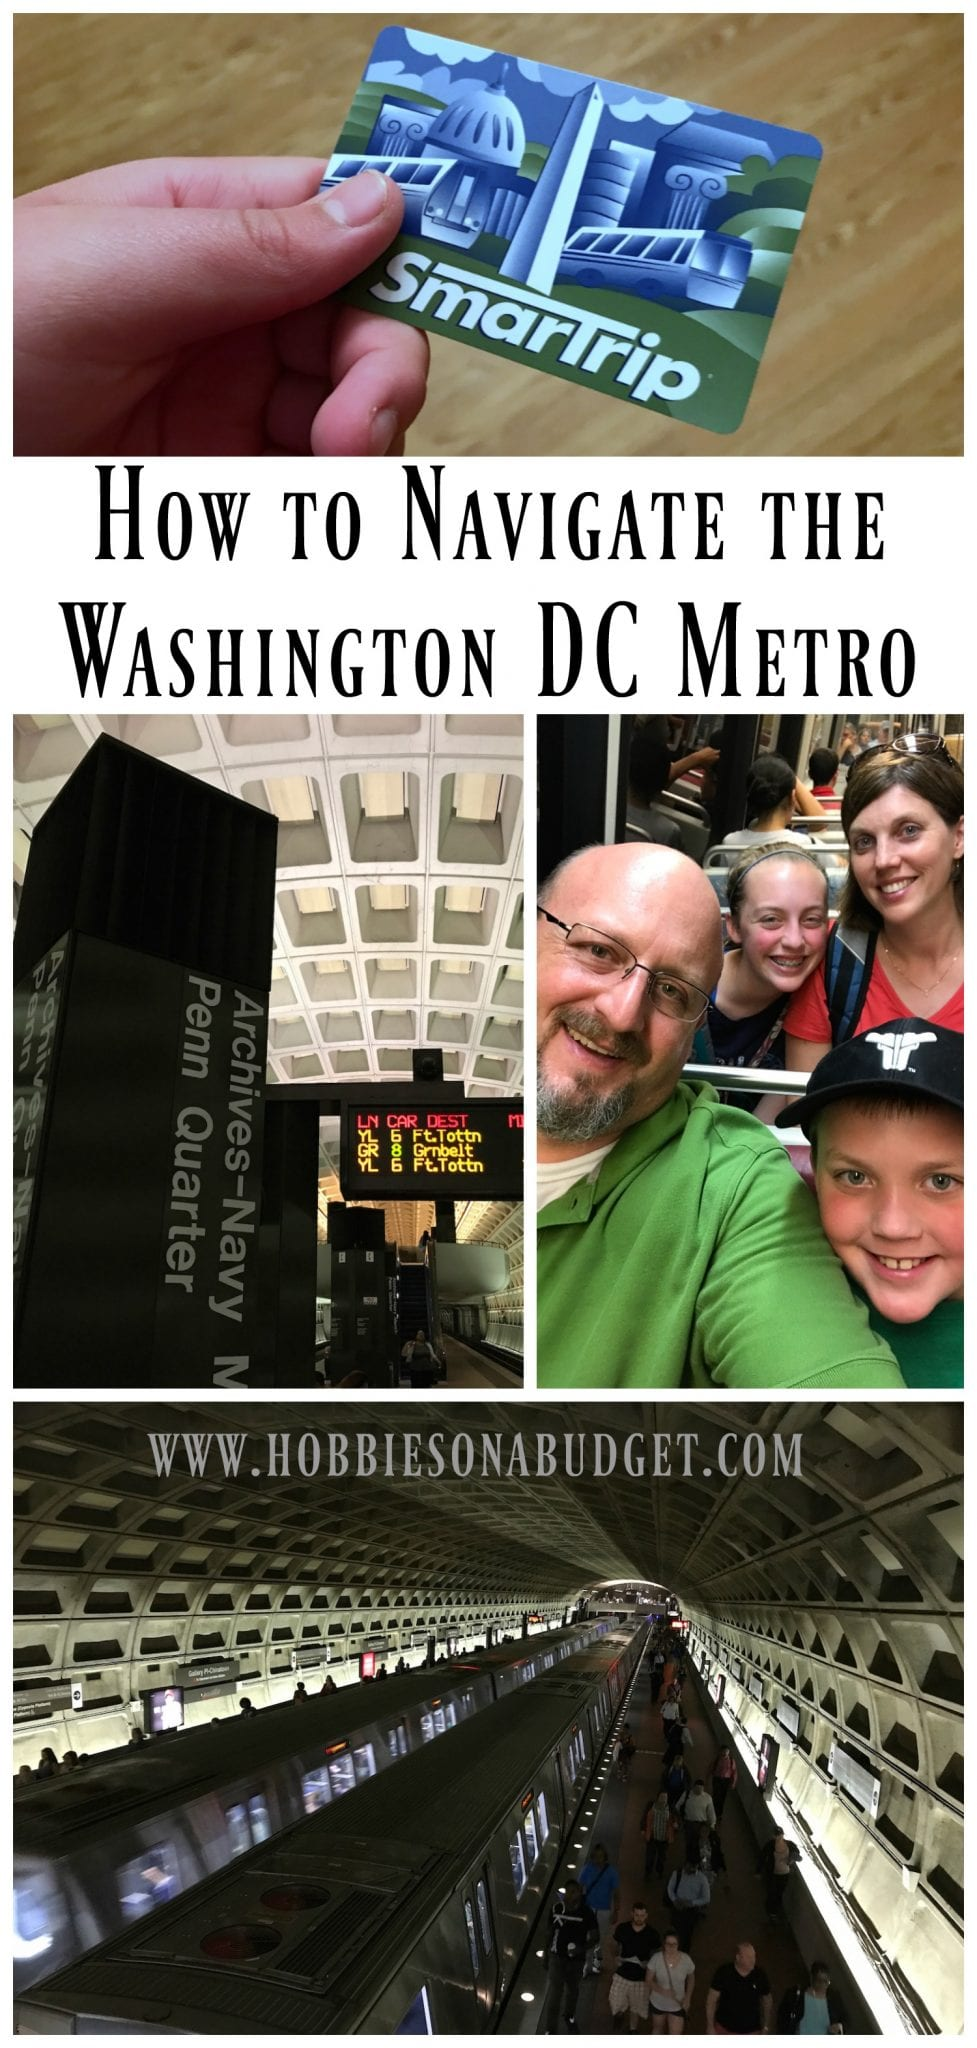 Navigating Washington DC is best done by public transportation. Some people are a little intimidated by the city subway system, but as long as you know a few simple things, you can navigate the Washington DC Metro system like an expert.